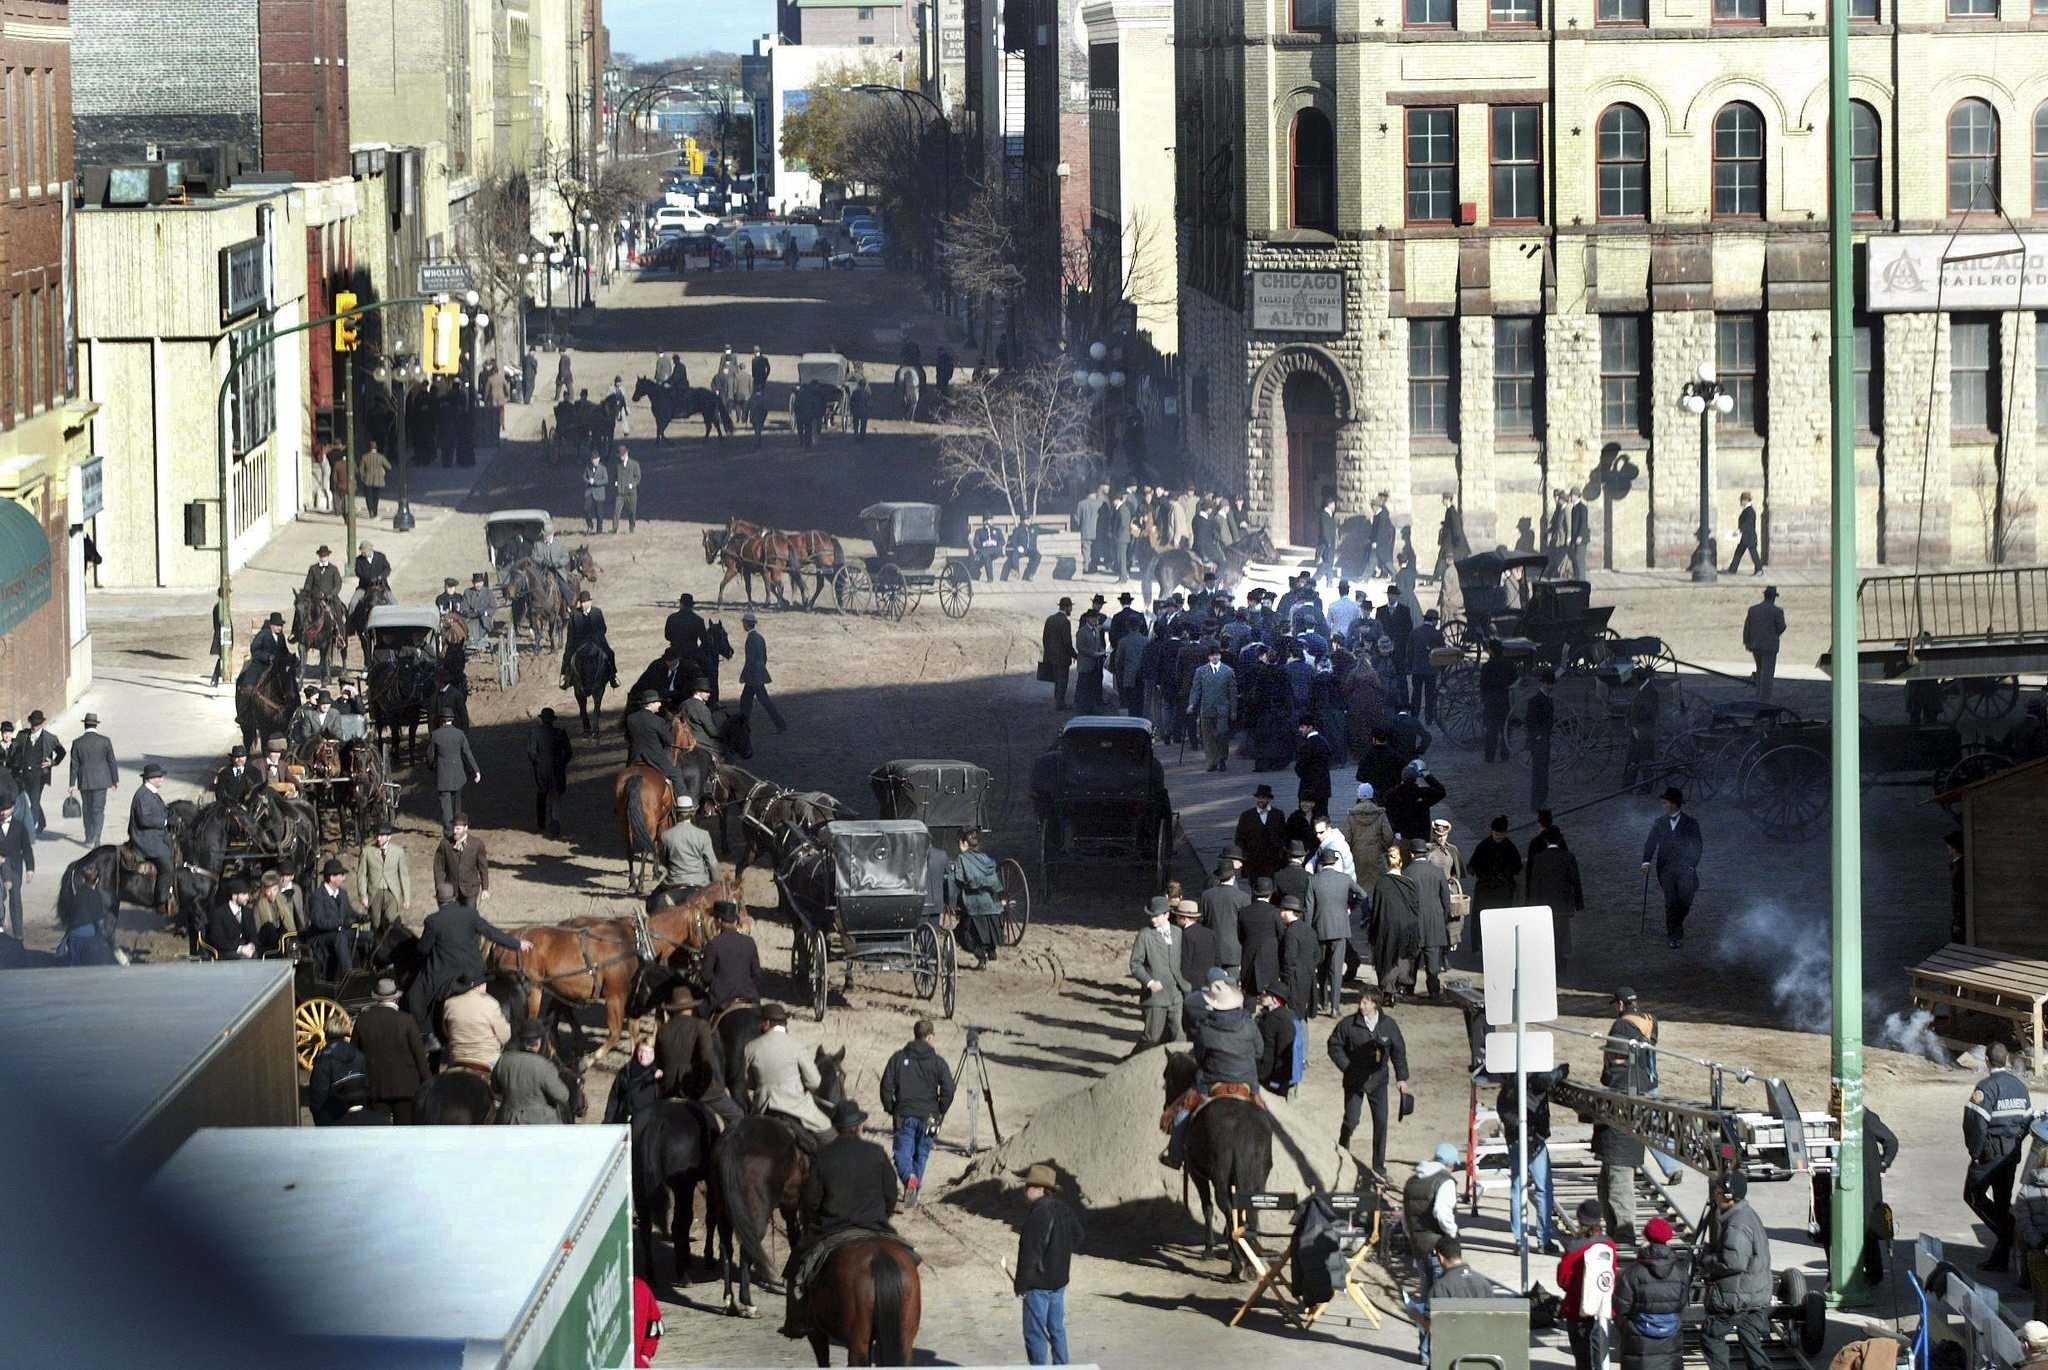 A scene for the movie The Assassination of Jesse James by the Coward Robert Ford was shot in Winnipeg's Exchange District in October, 2005. (Wayne Glowacki / Winnipeg Free Press files)</p>